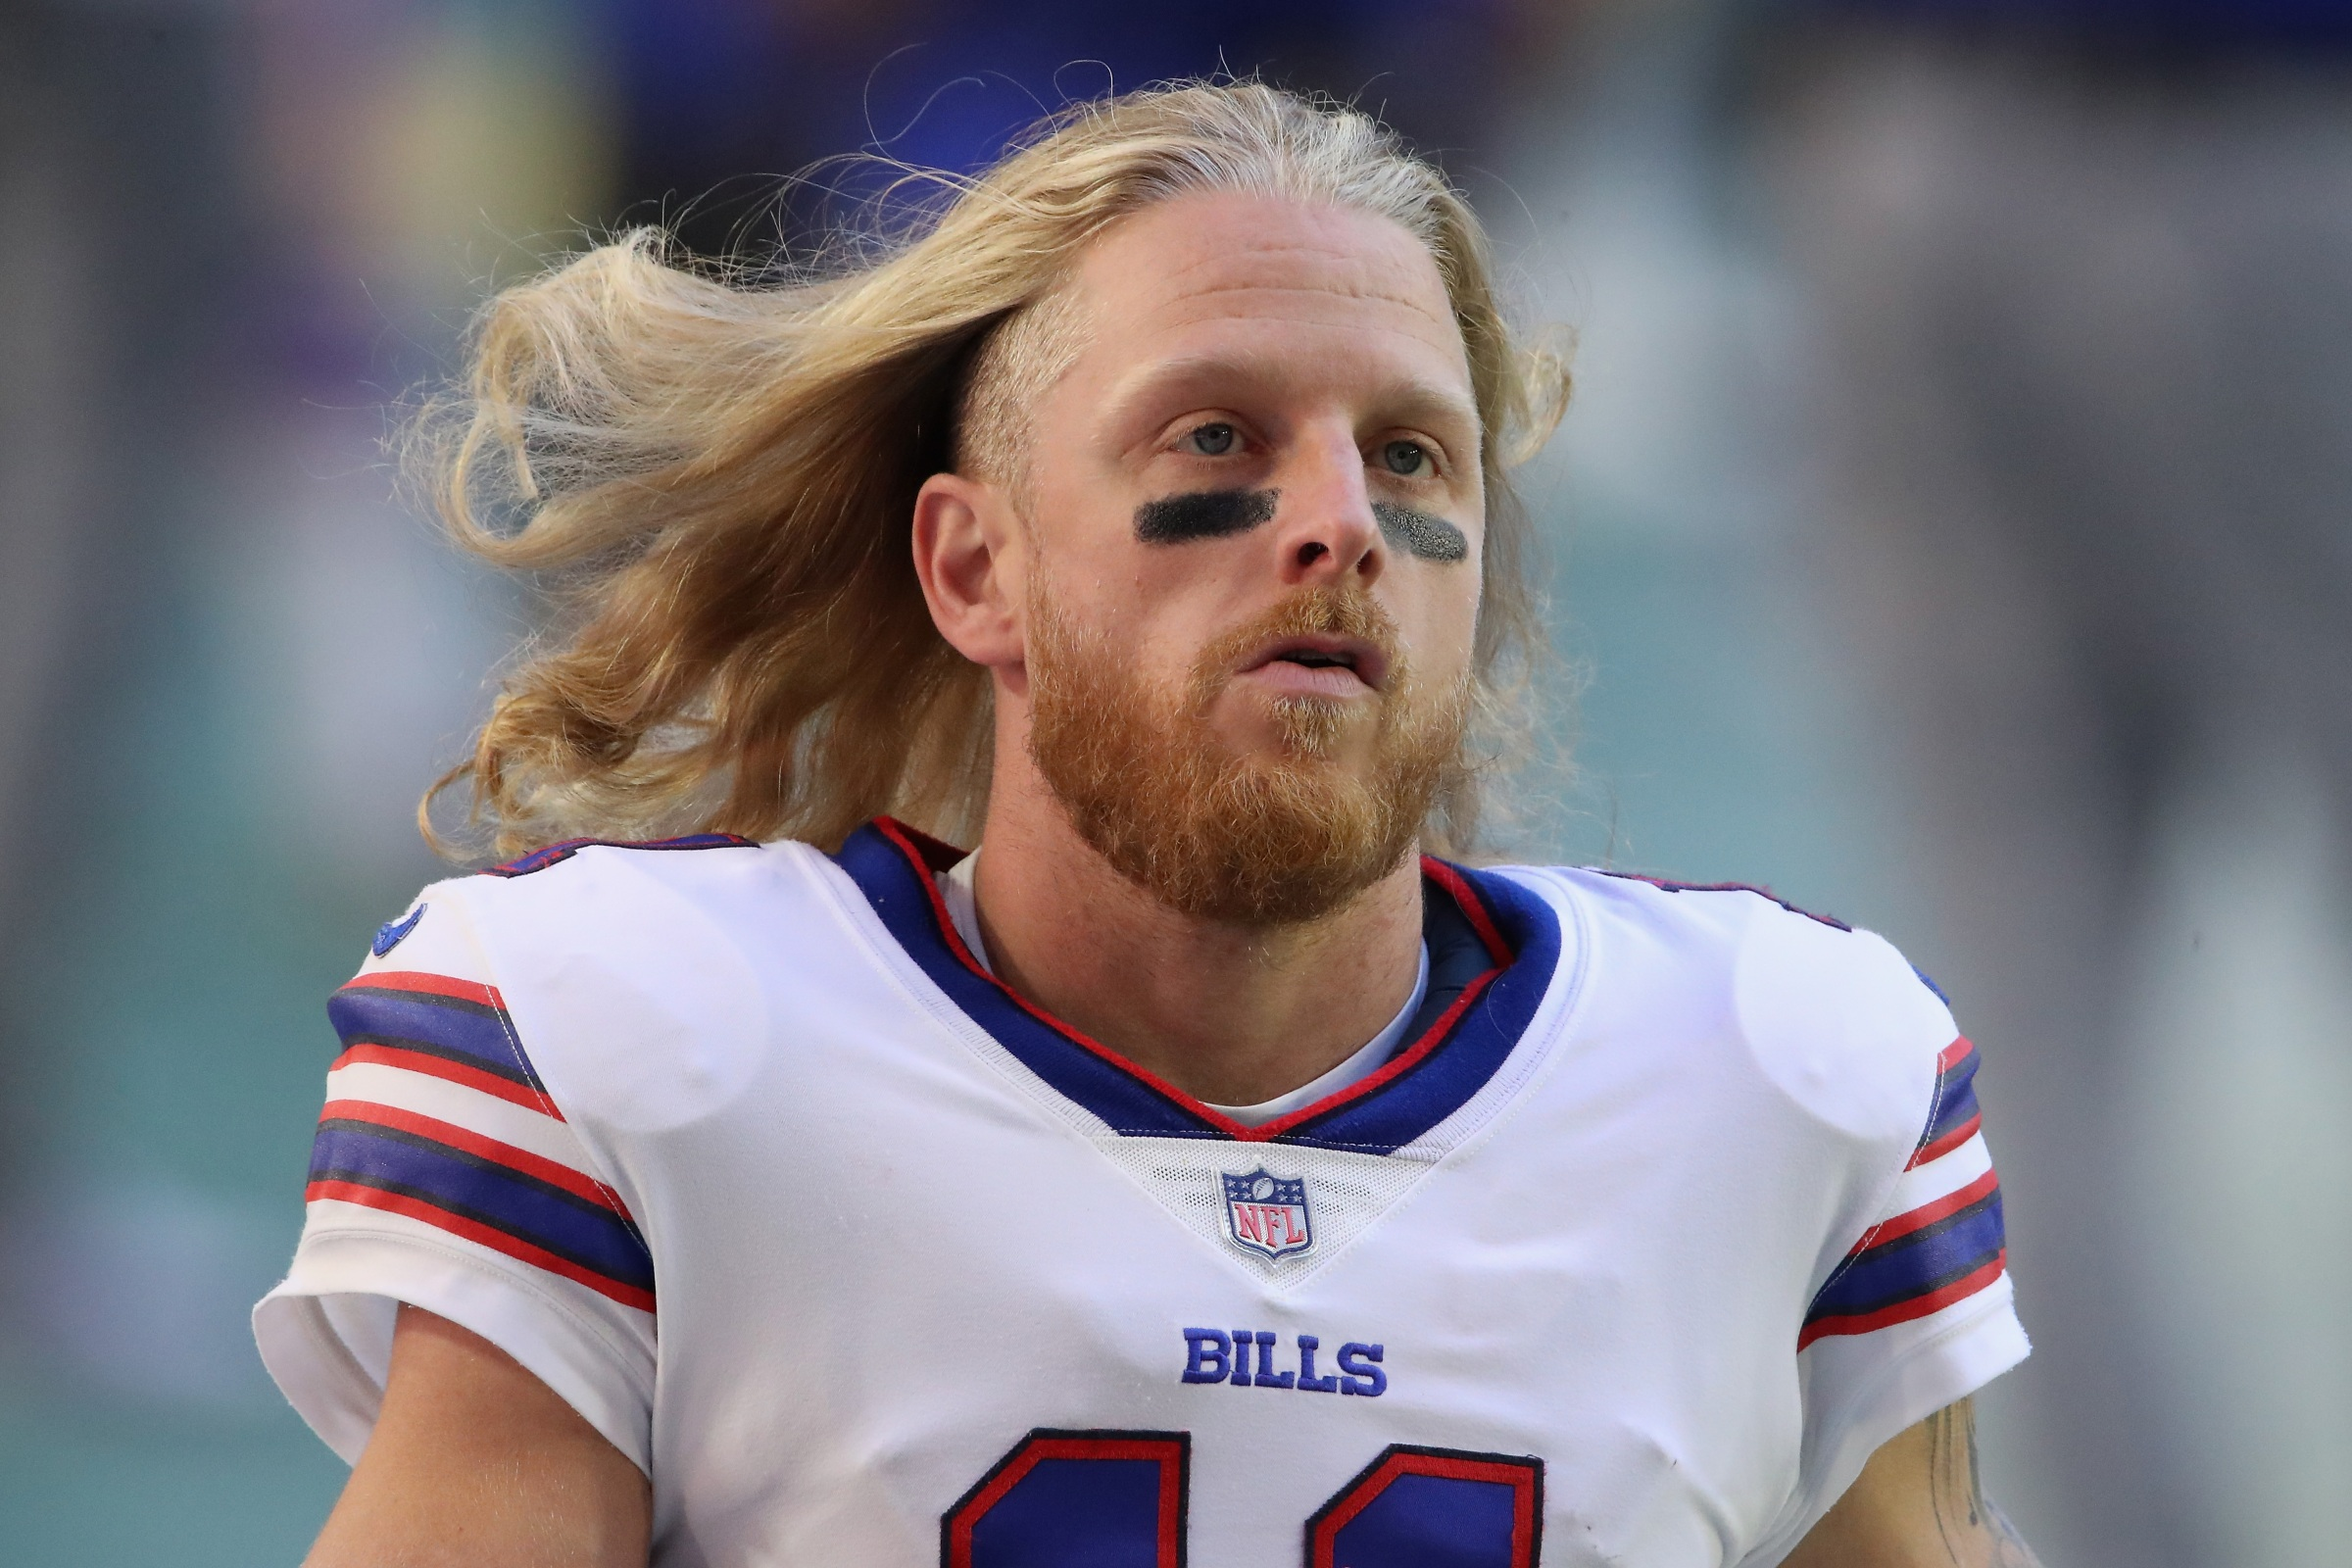 Cole Beasley looks super intense and tough.